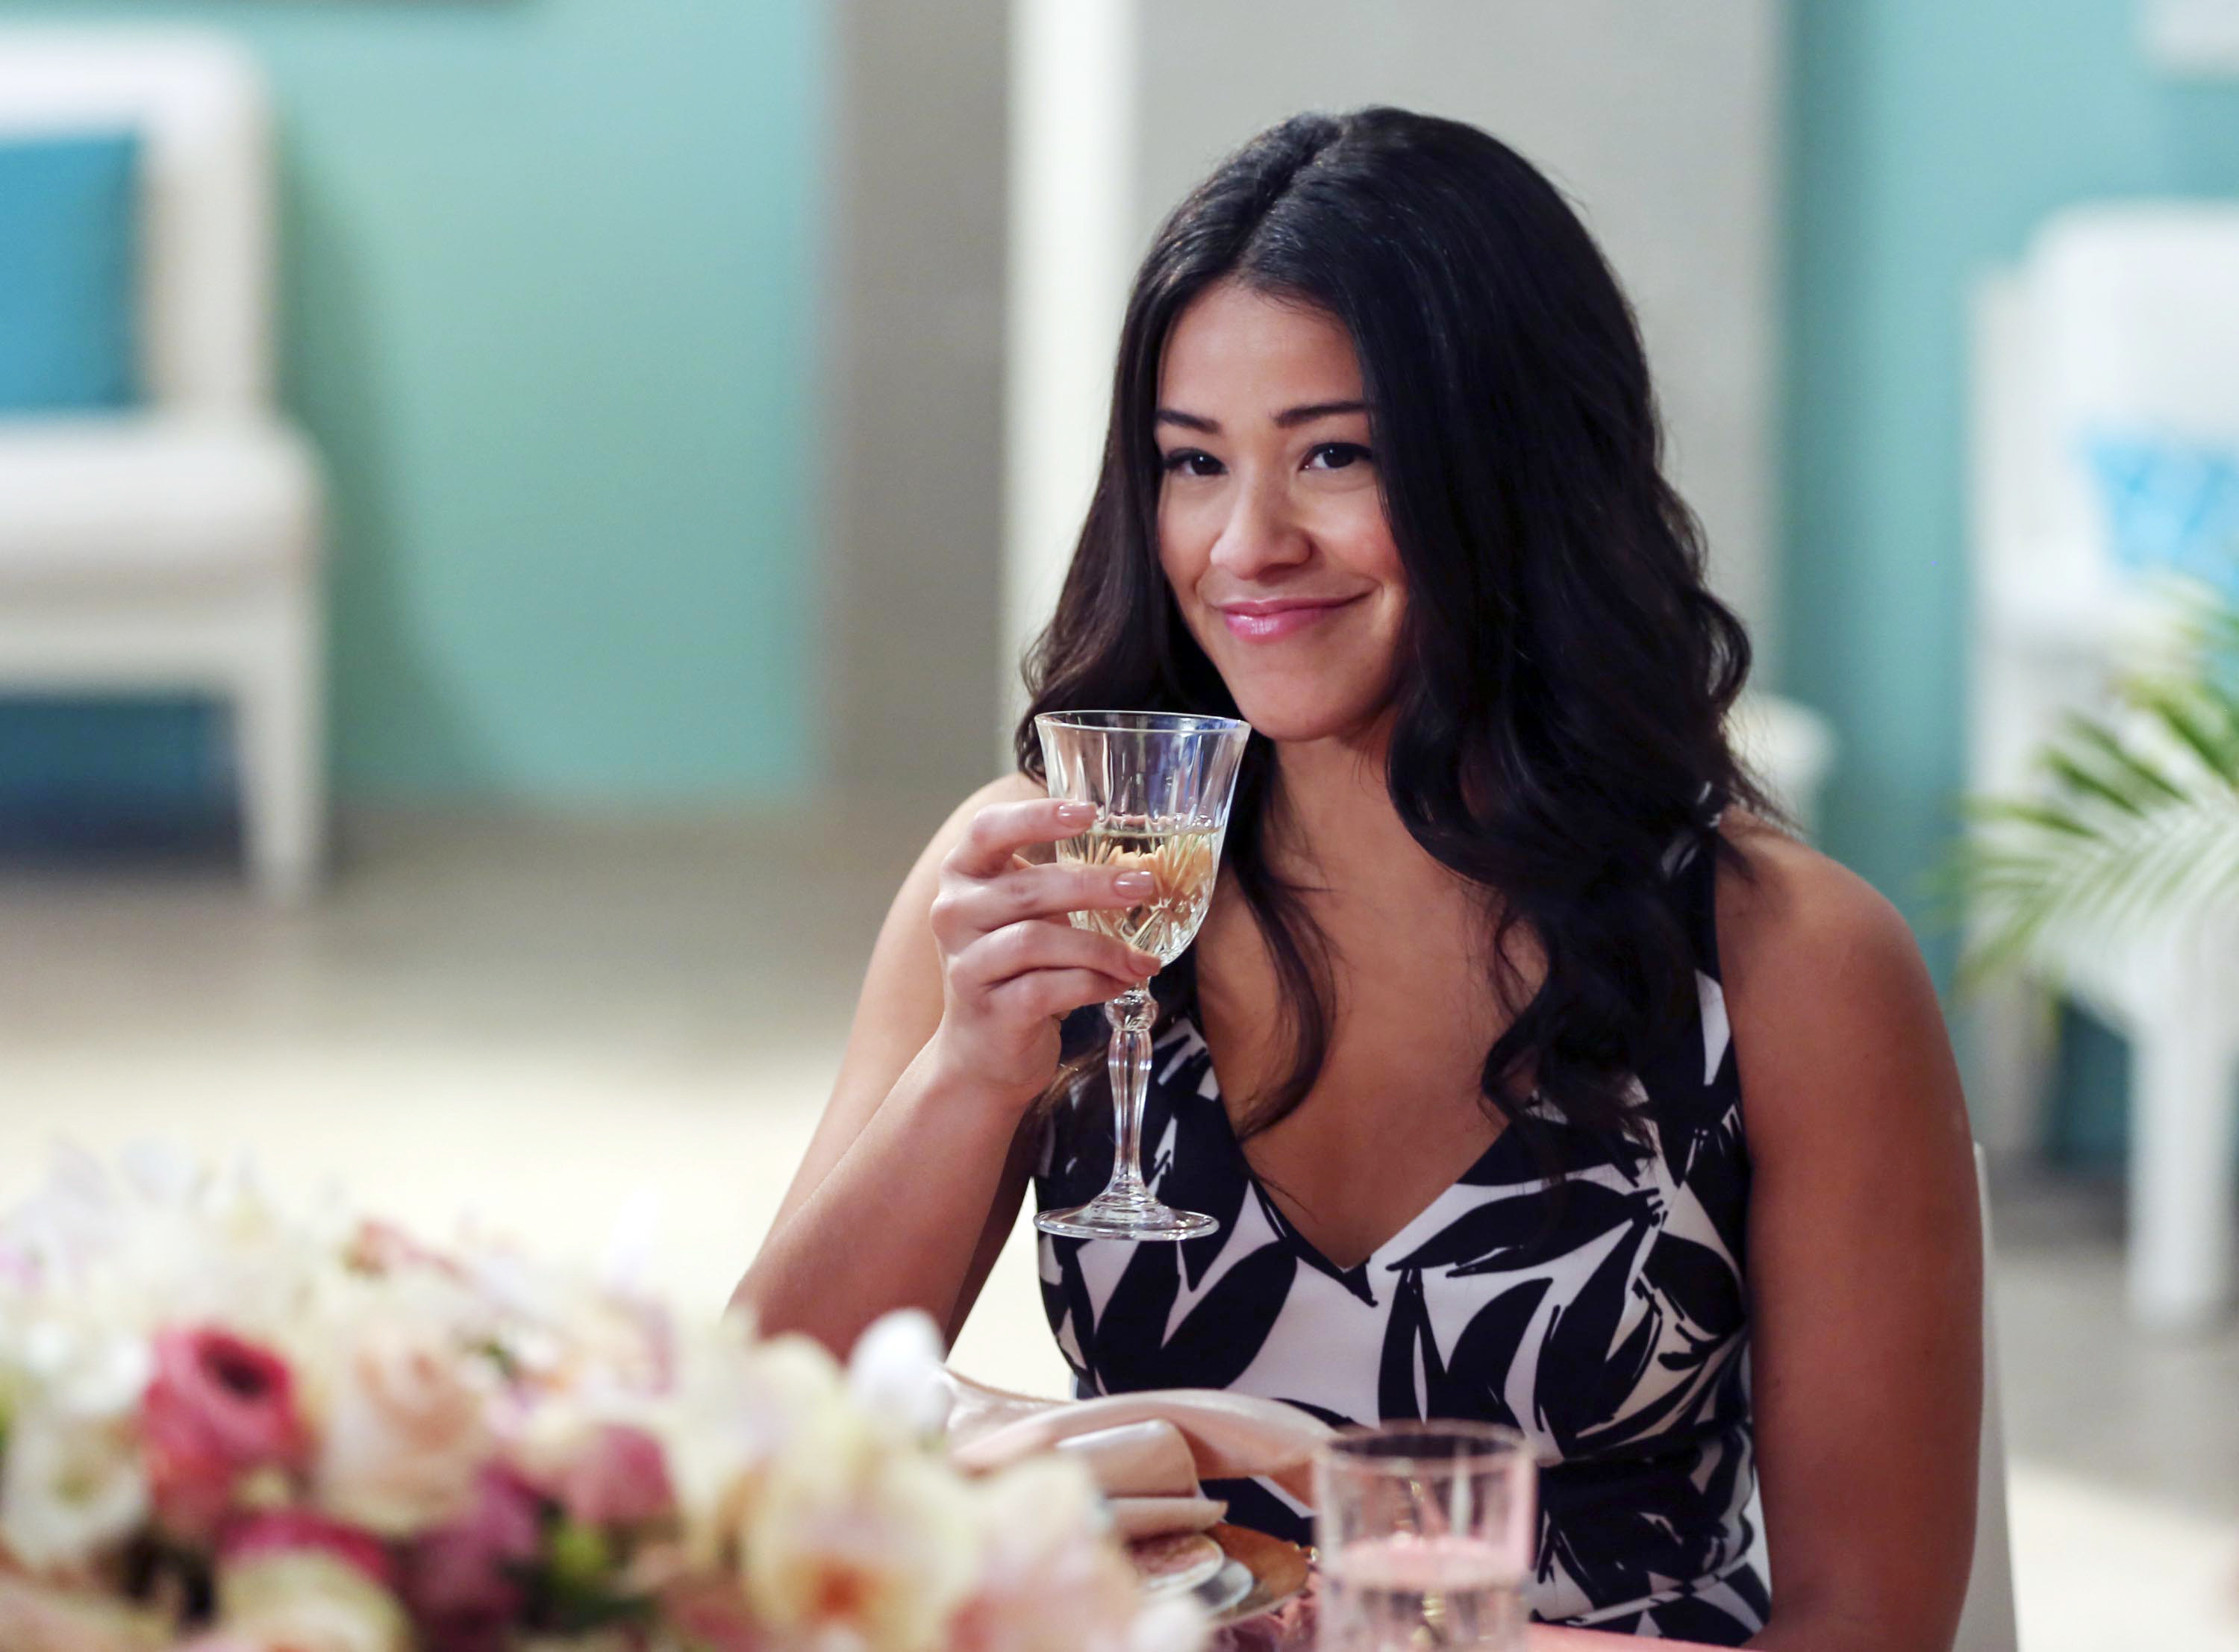 Jane grinning and hold up a glass